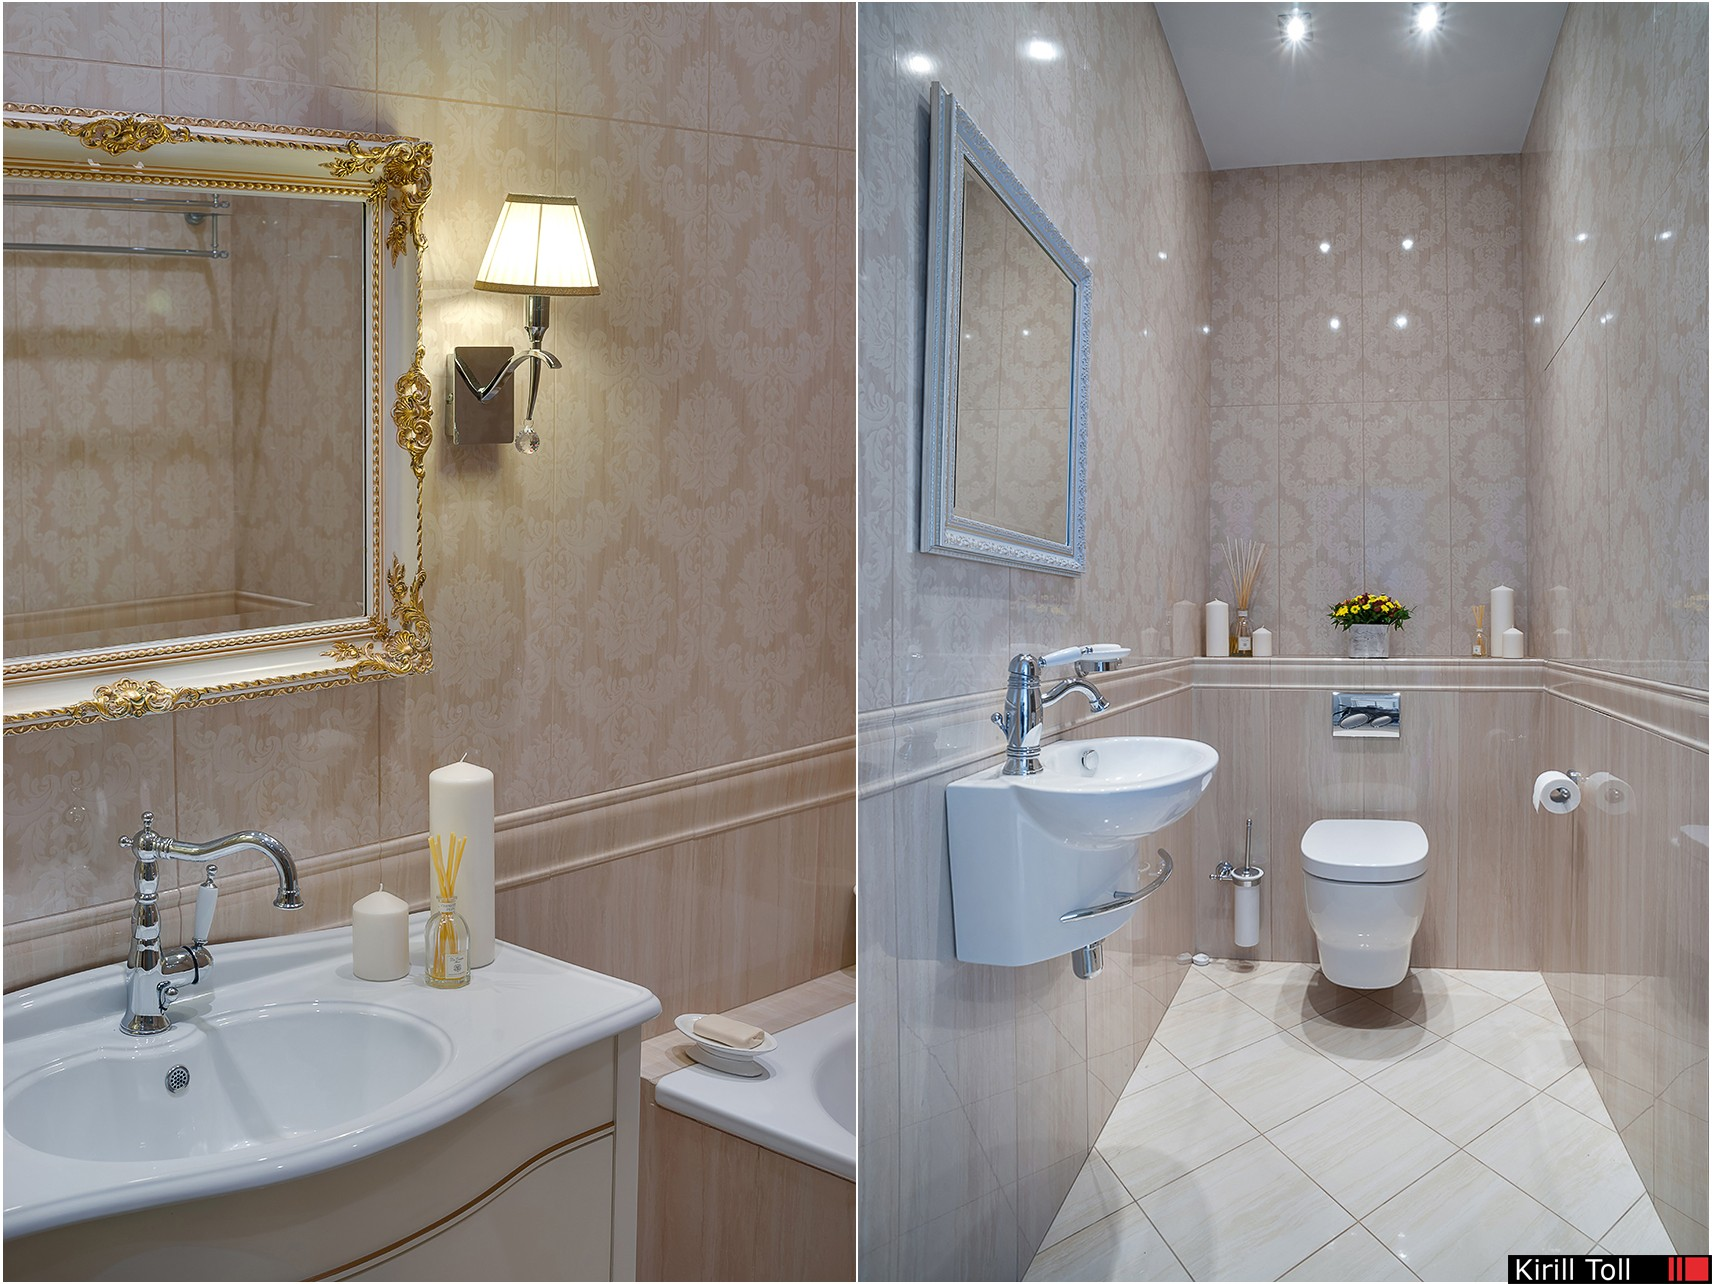 Interior photos for a realtor Photographing-apartments for sale real estate in the suburbs